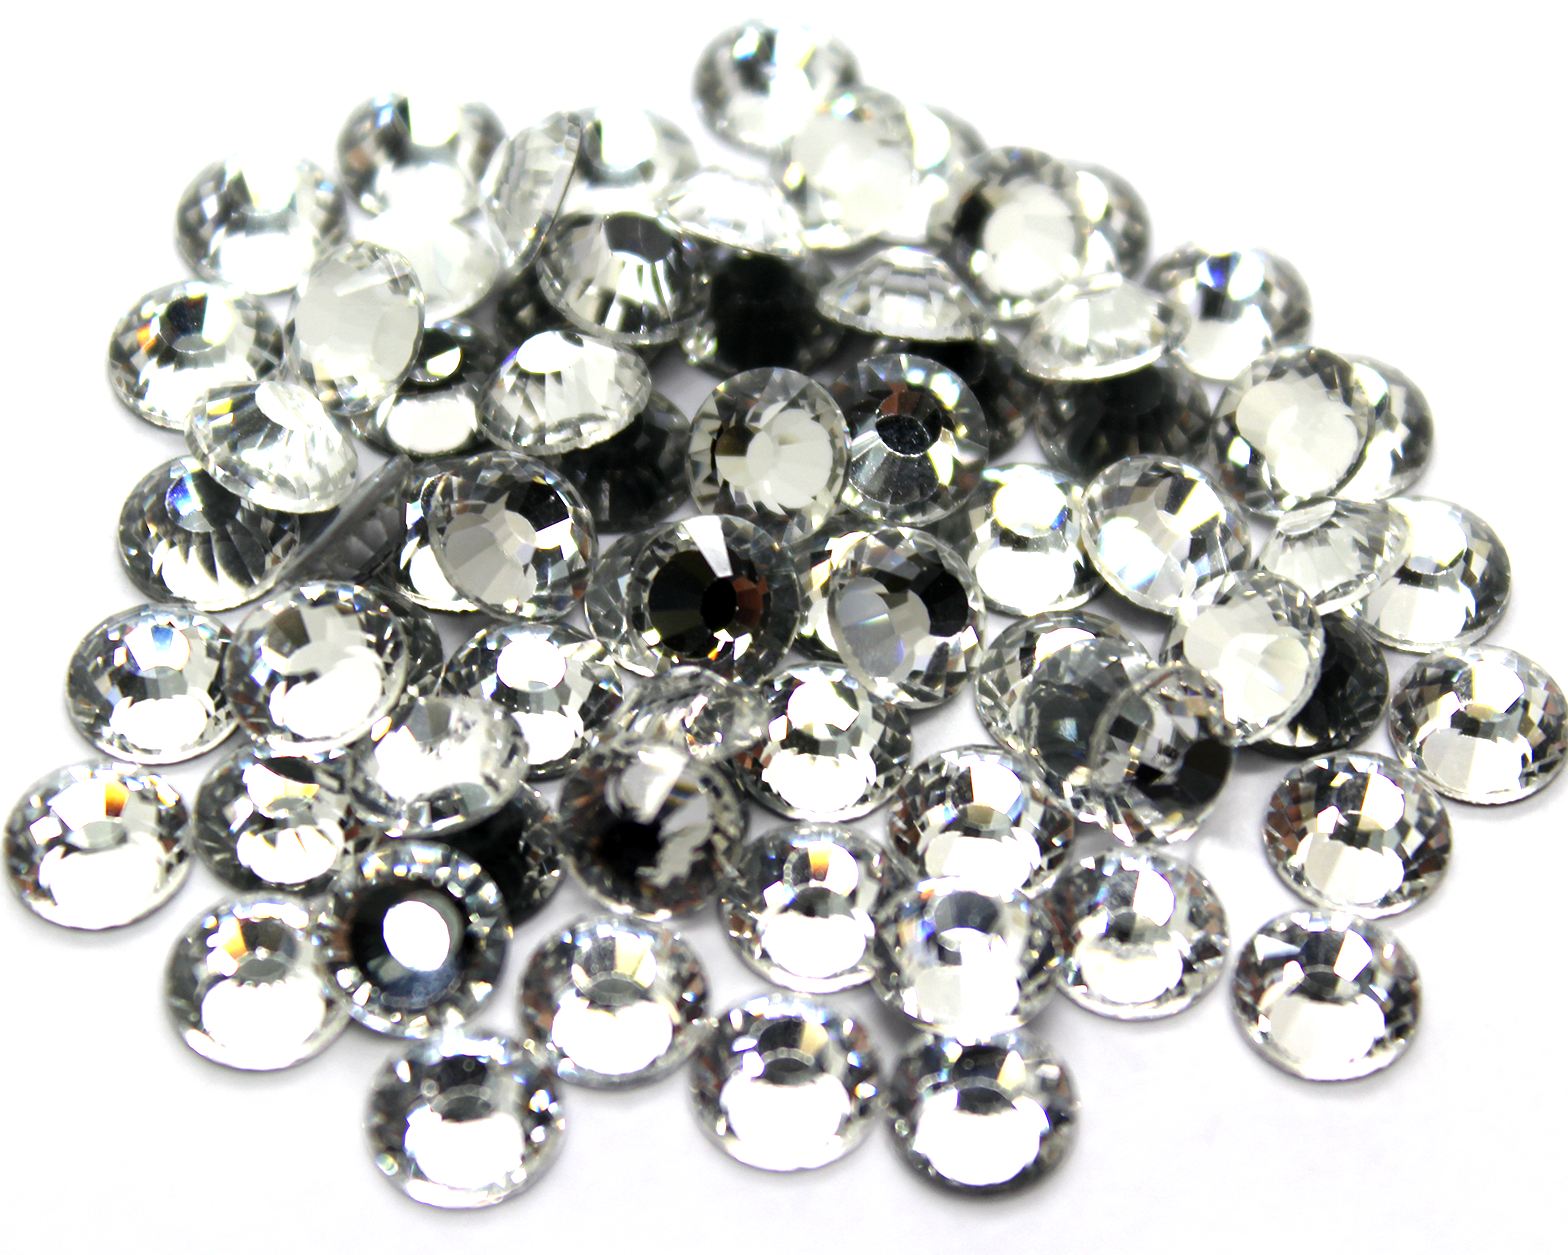 Rhinestone Hotfix Flat Back, SS-34, Alloy, Crystal, 7mm x 7mm, 3.5 grams each